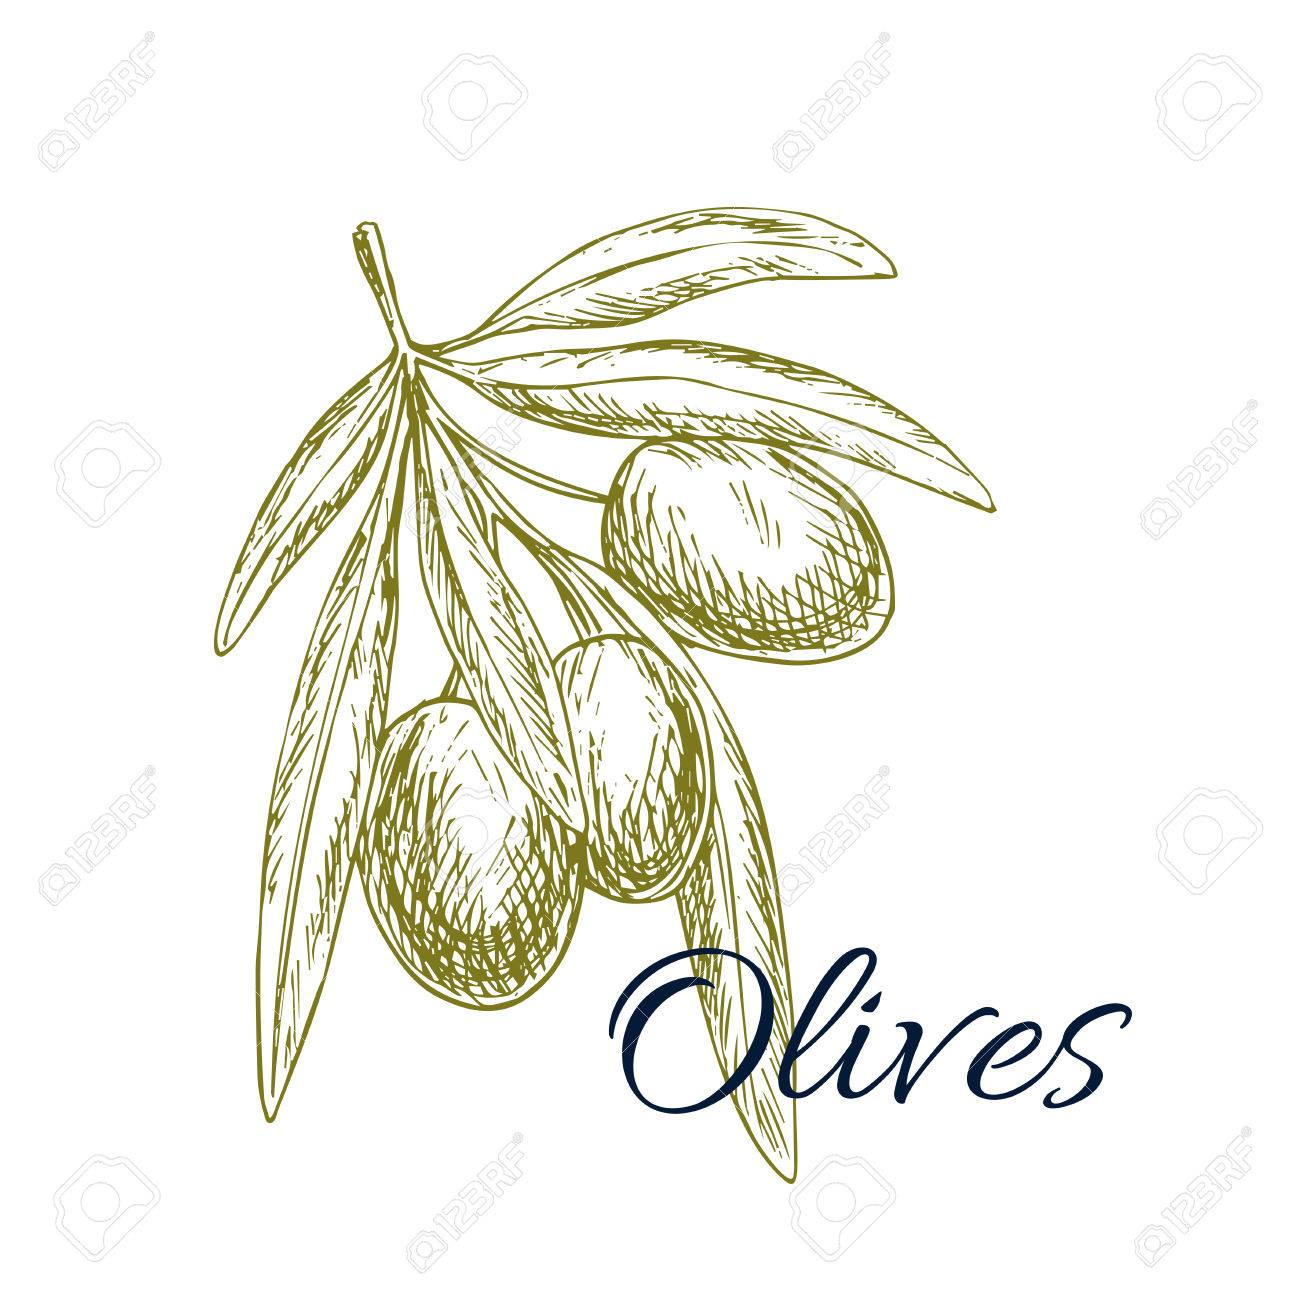 Olives sketch icon vector isolated green olive plant tree branch olives sketch icon vector isolated green olive plant tree branch design for for olive oil label healthy vegetarian and vegan vegetable food menu symbol buycottarizona Choice Image